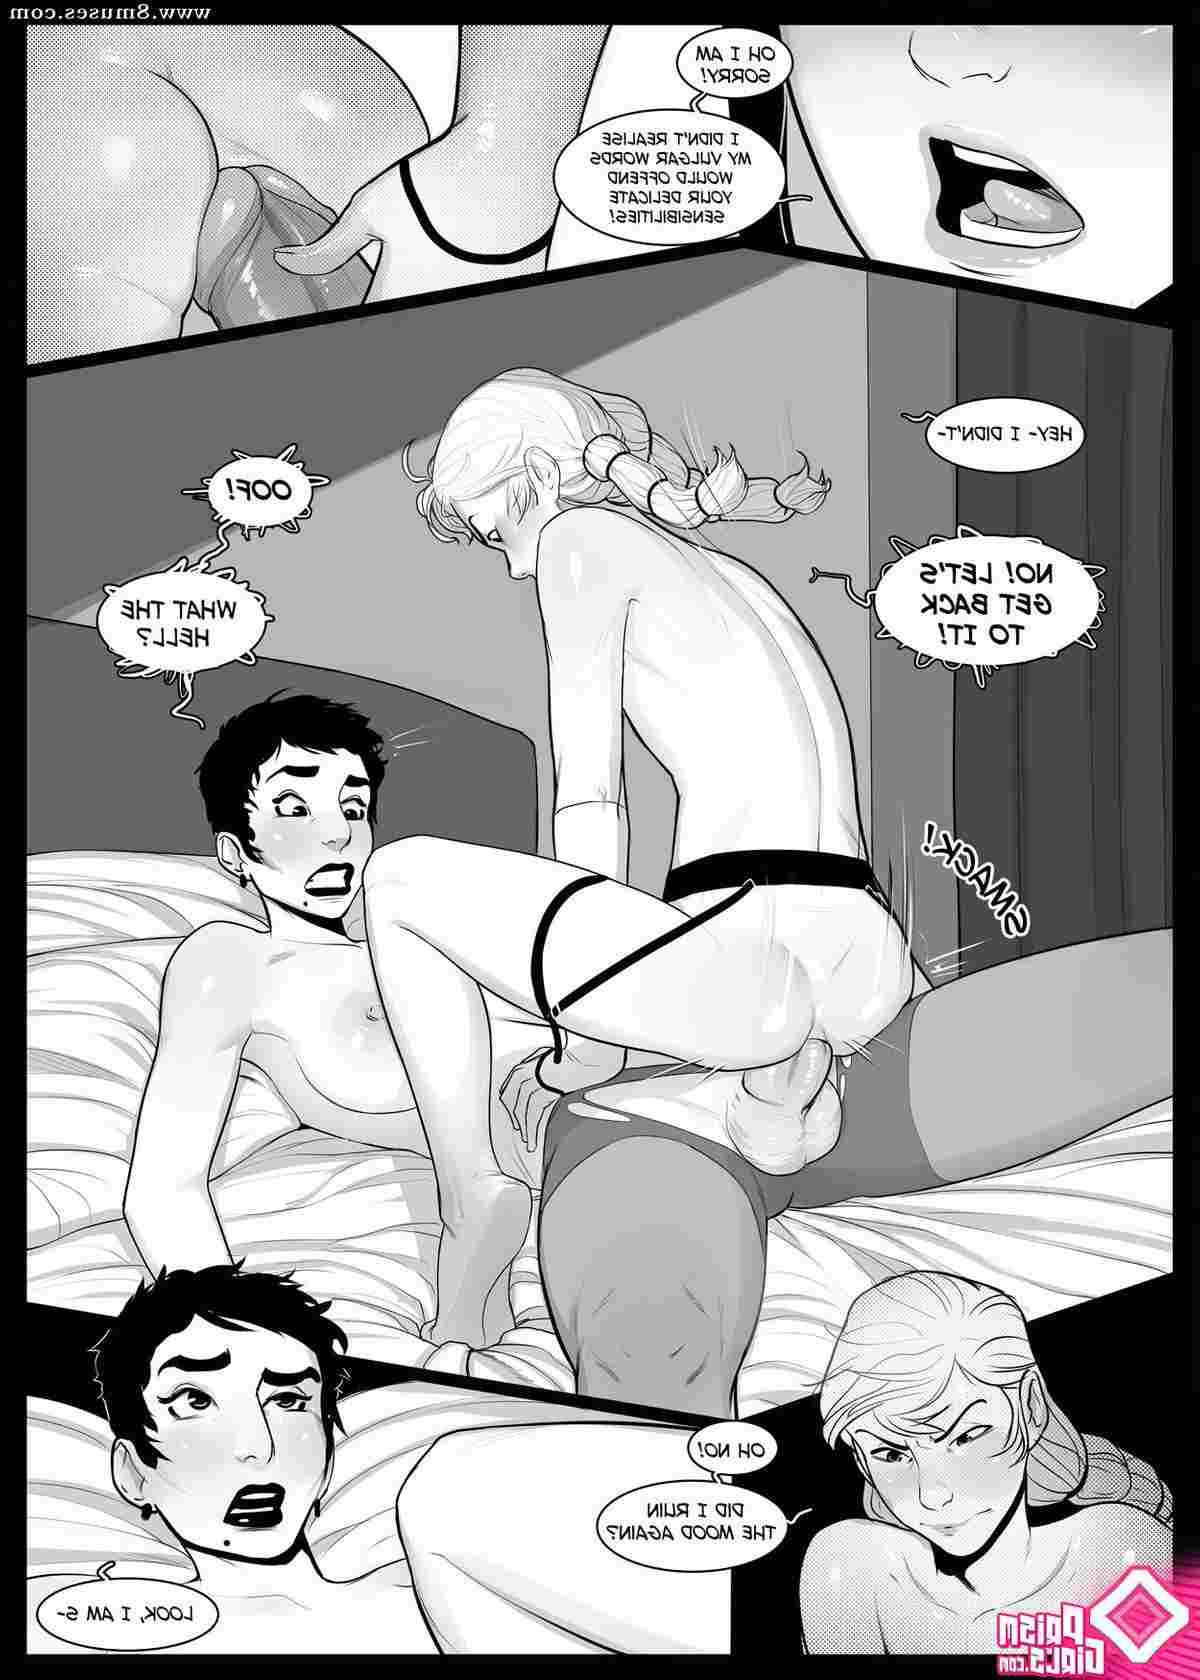 PrismGirls-Comics/Talking-Dirty Talking_Dirty__8muses_-_Sex_and_Porn_Comics_5.jpg